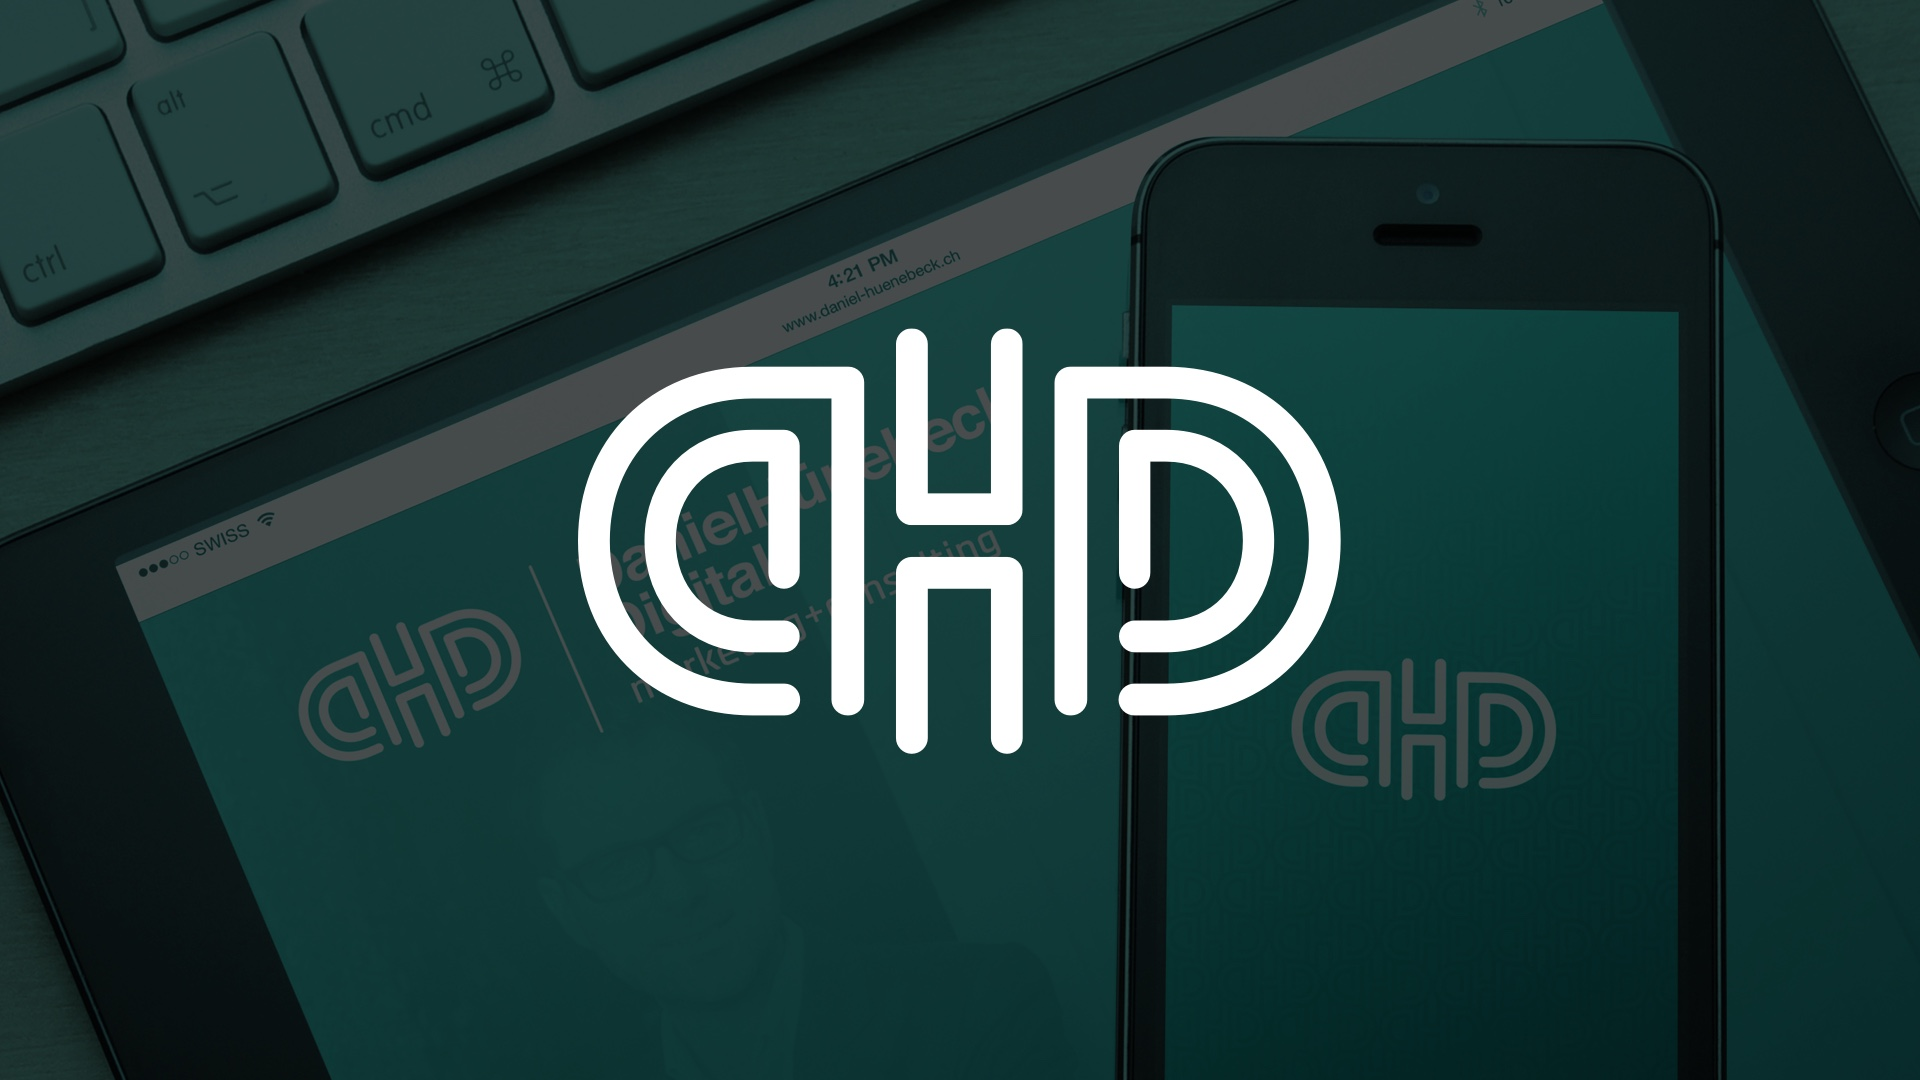 brand_case_dhd